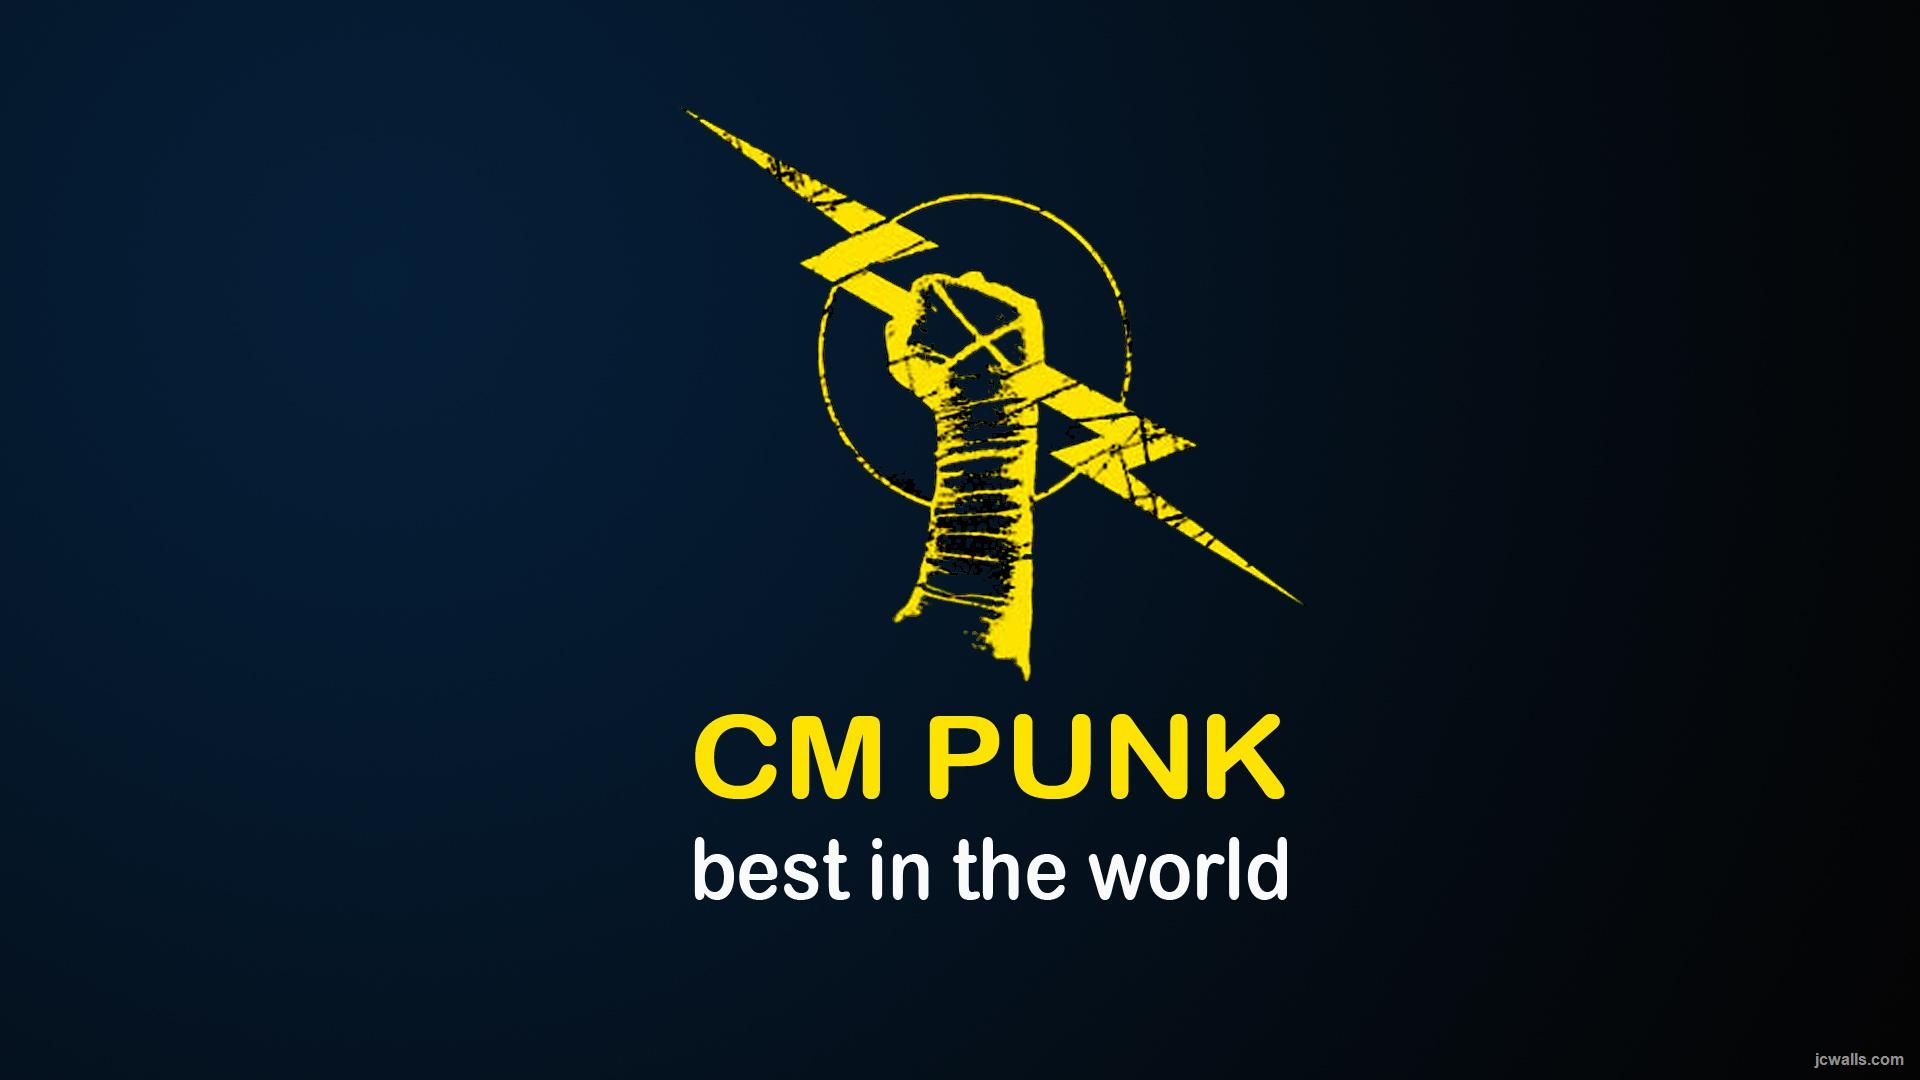 Cm punk logo wallpapers wallpaper cave adorable wallpapers cm punk logo wallpapers wallpaper cave voltagebd Image collections